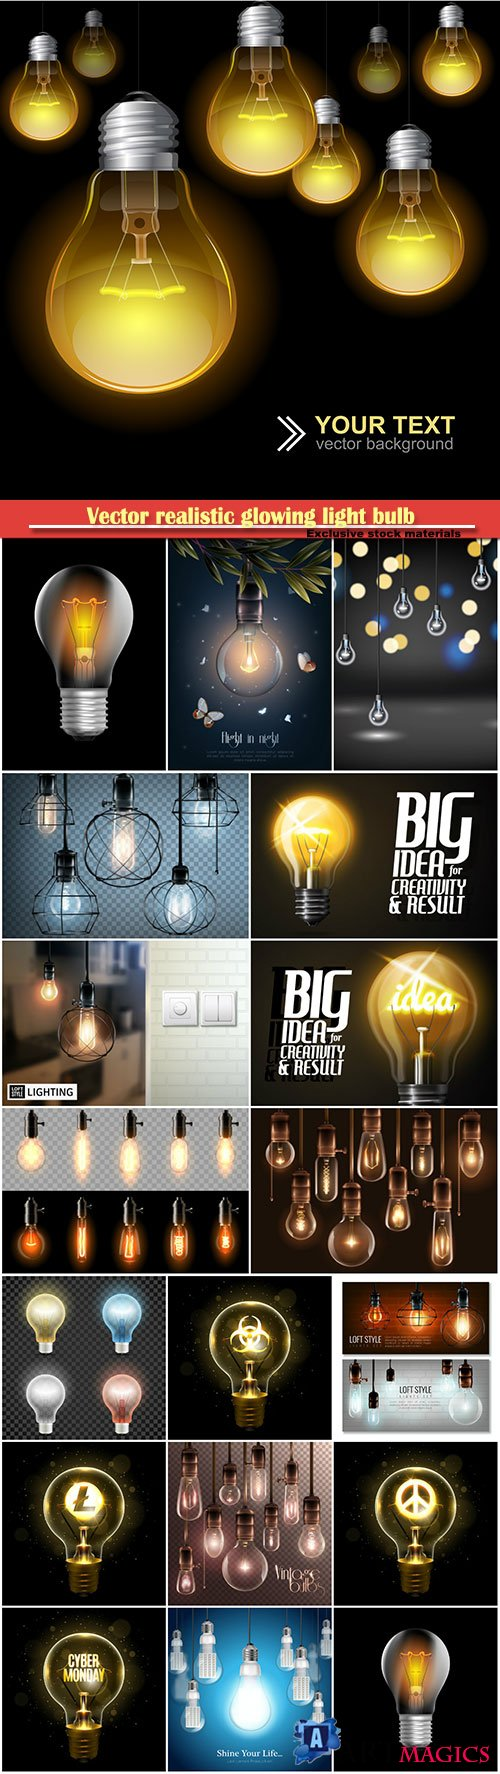 Vector realistic glowing light bulb